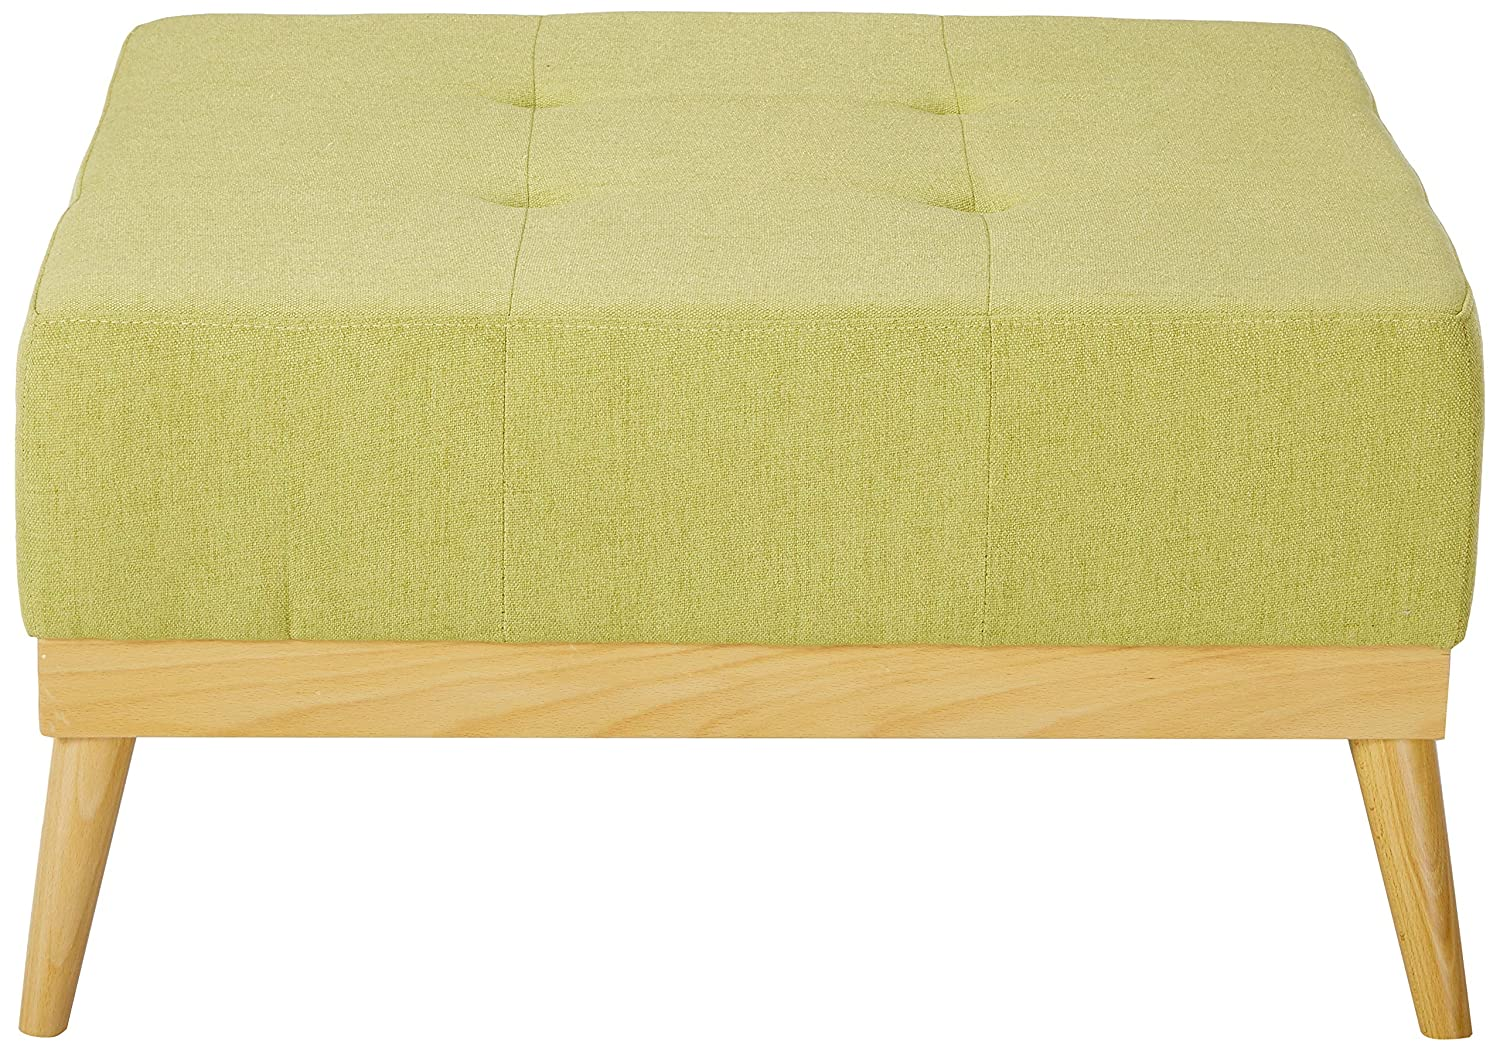 Christopher Knight Home 300230 Living Lou Mid-Century Olive Green Fabric Ottoman, Bright